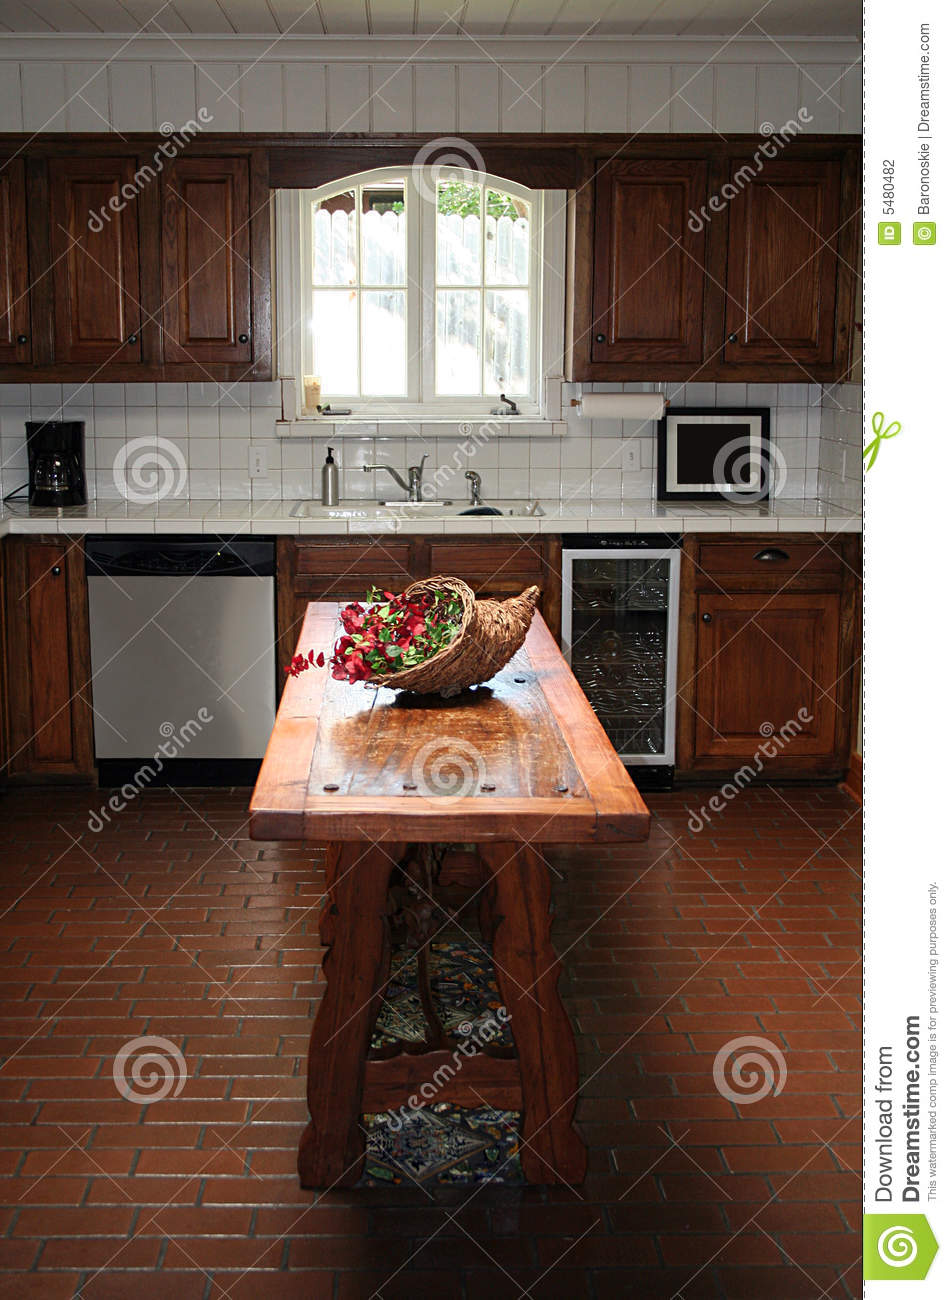 Kitchen stock photography image 5480482 for Kitchens with islands in the middle